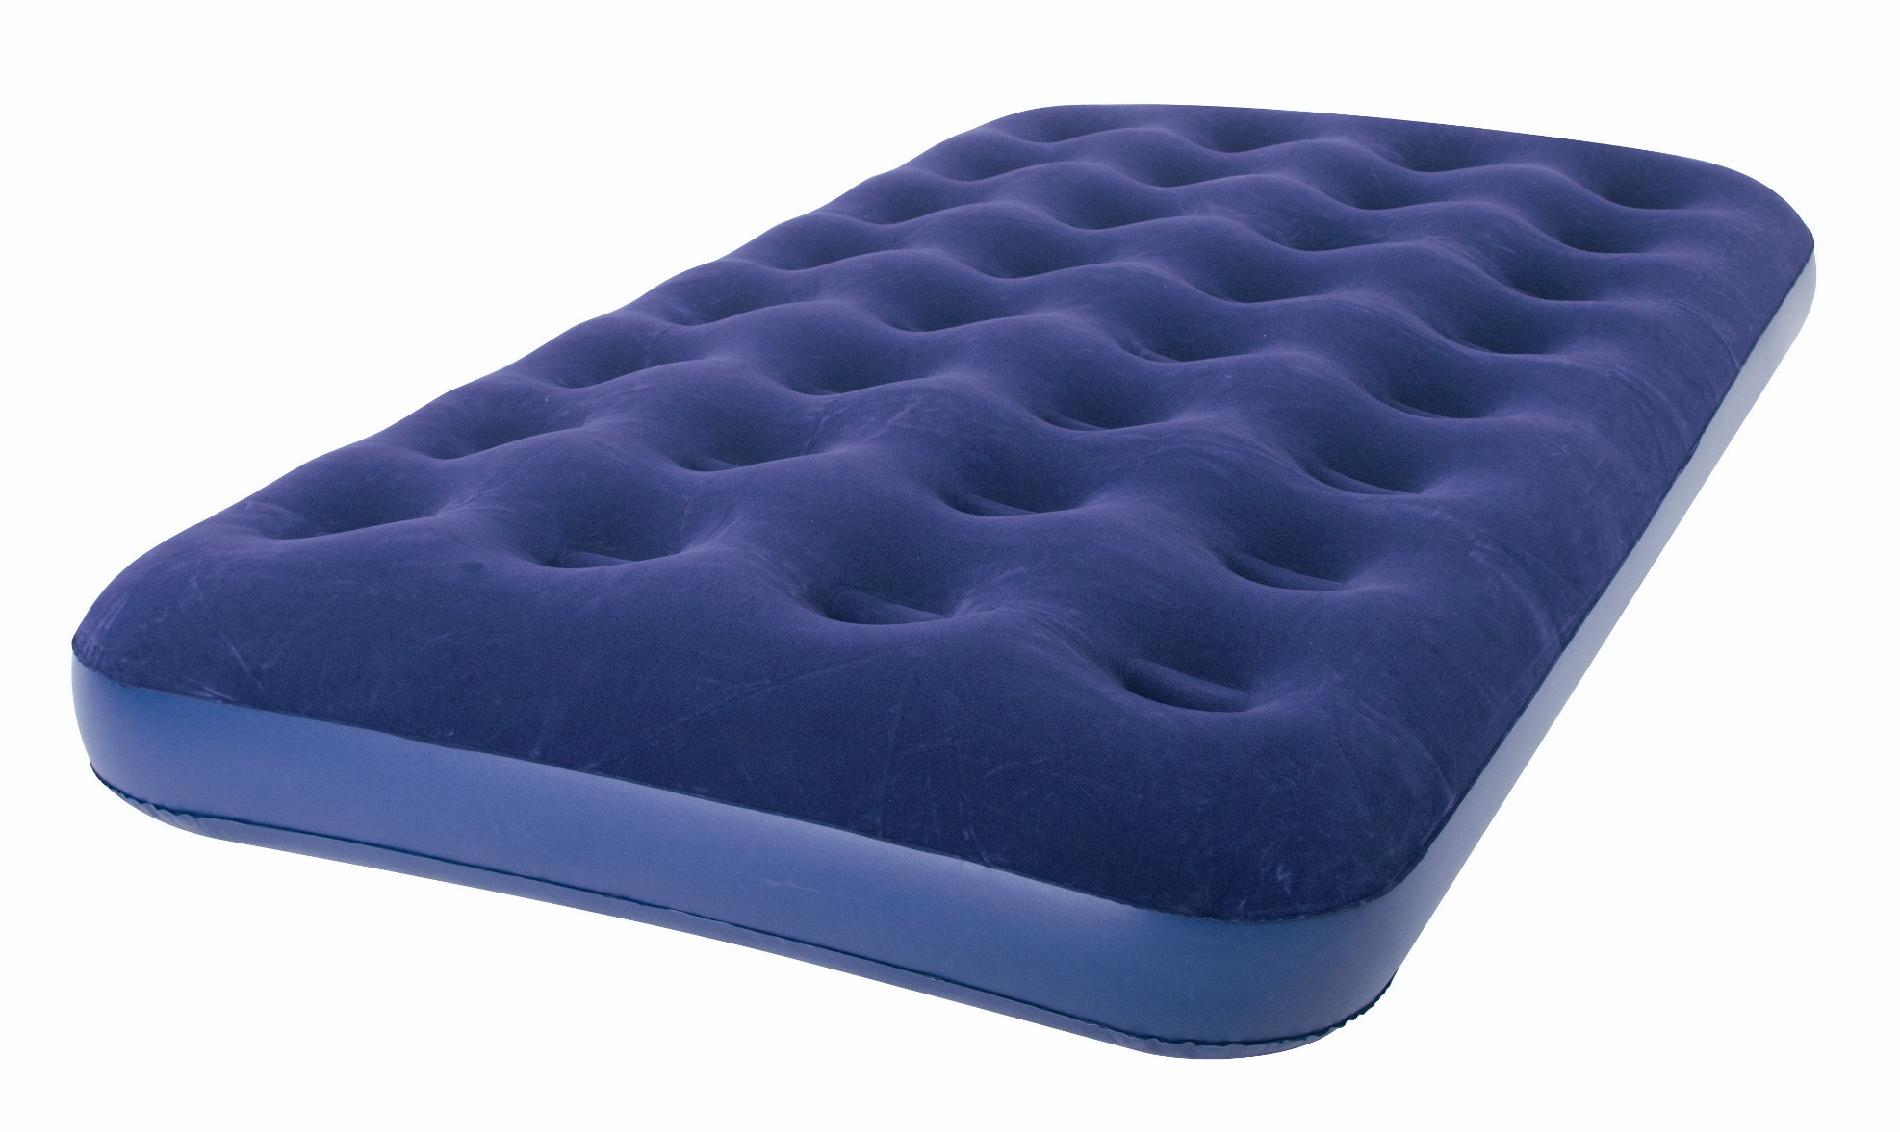 types construction an air costs need care made mattresses to what of mattress know is you